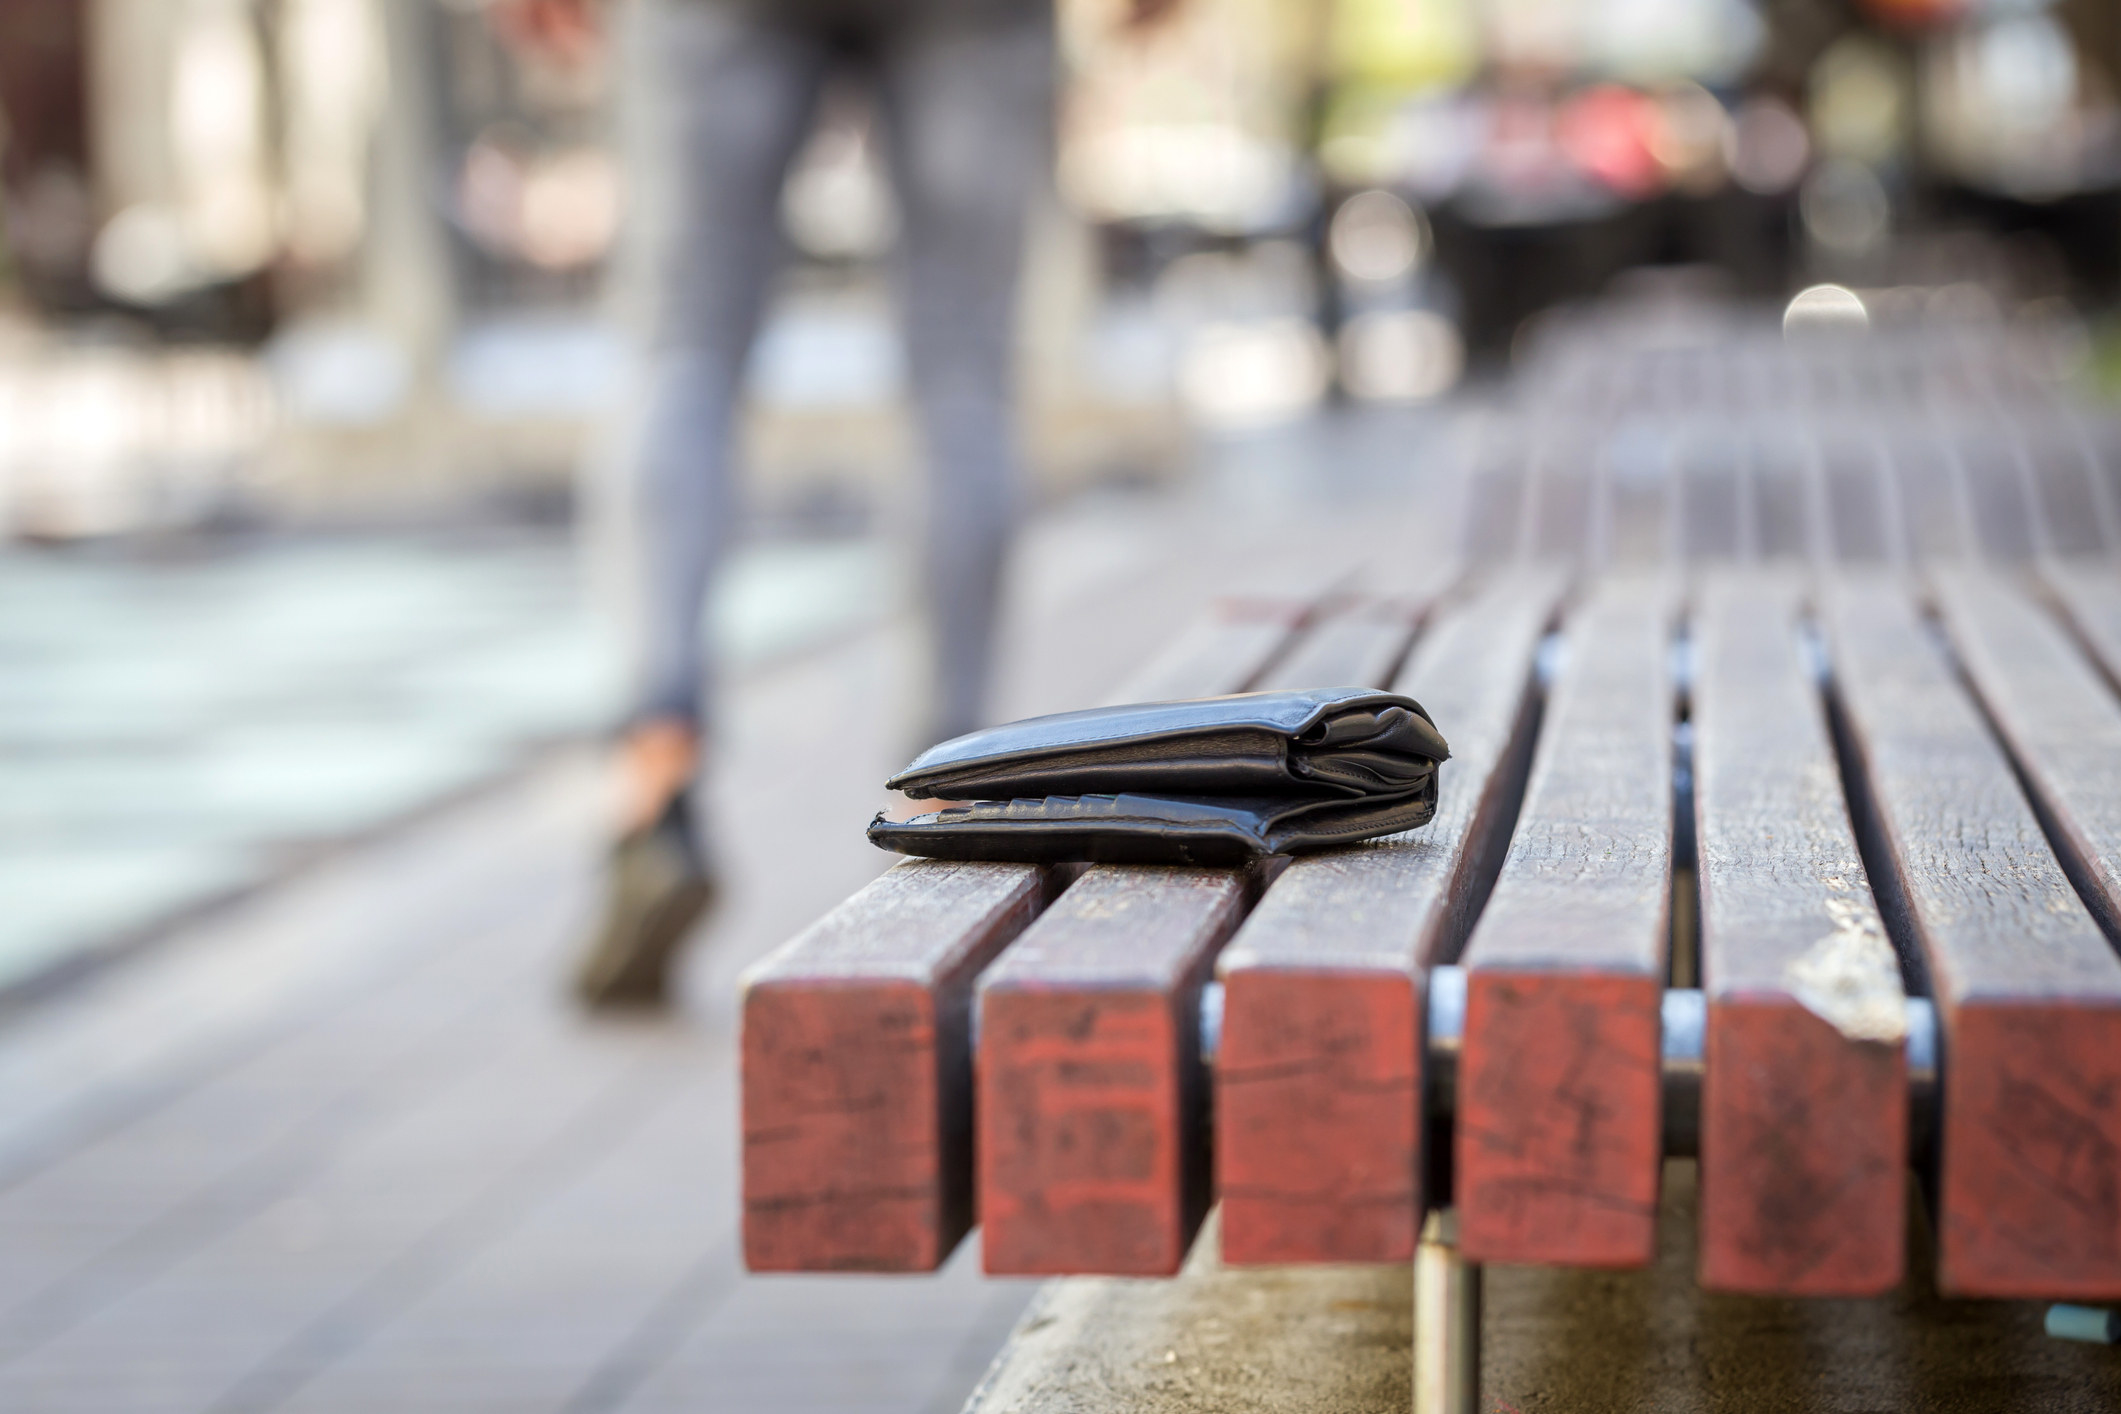 A lost wallet on a bench.